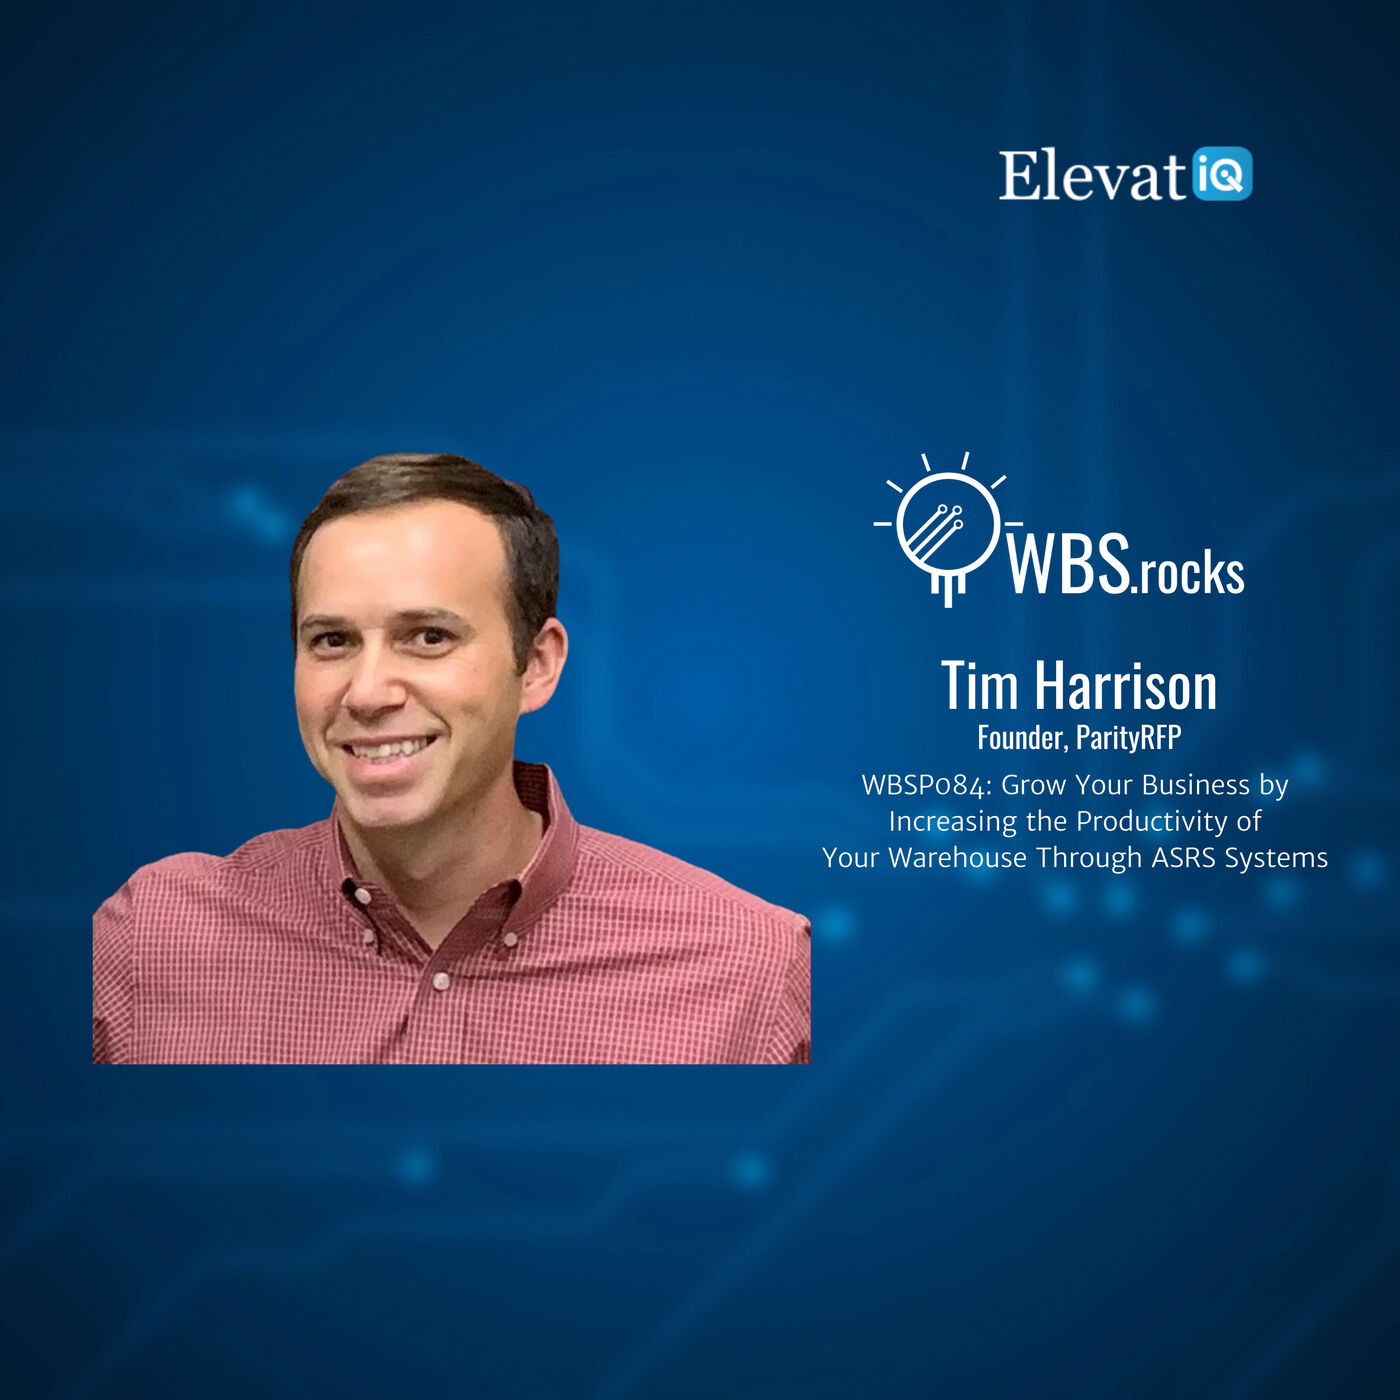 WBSP084: Grow Your Business by Increasing the Productivity of Your Warehouse Through ASRS Systems w/ Tim Harrison